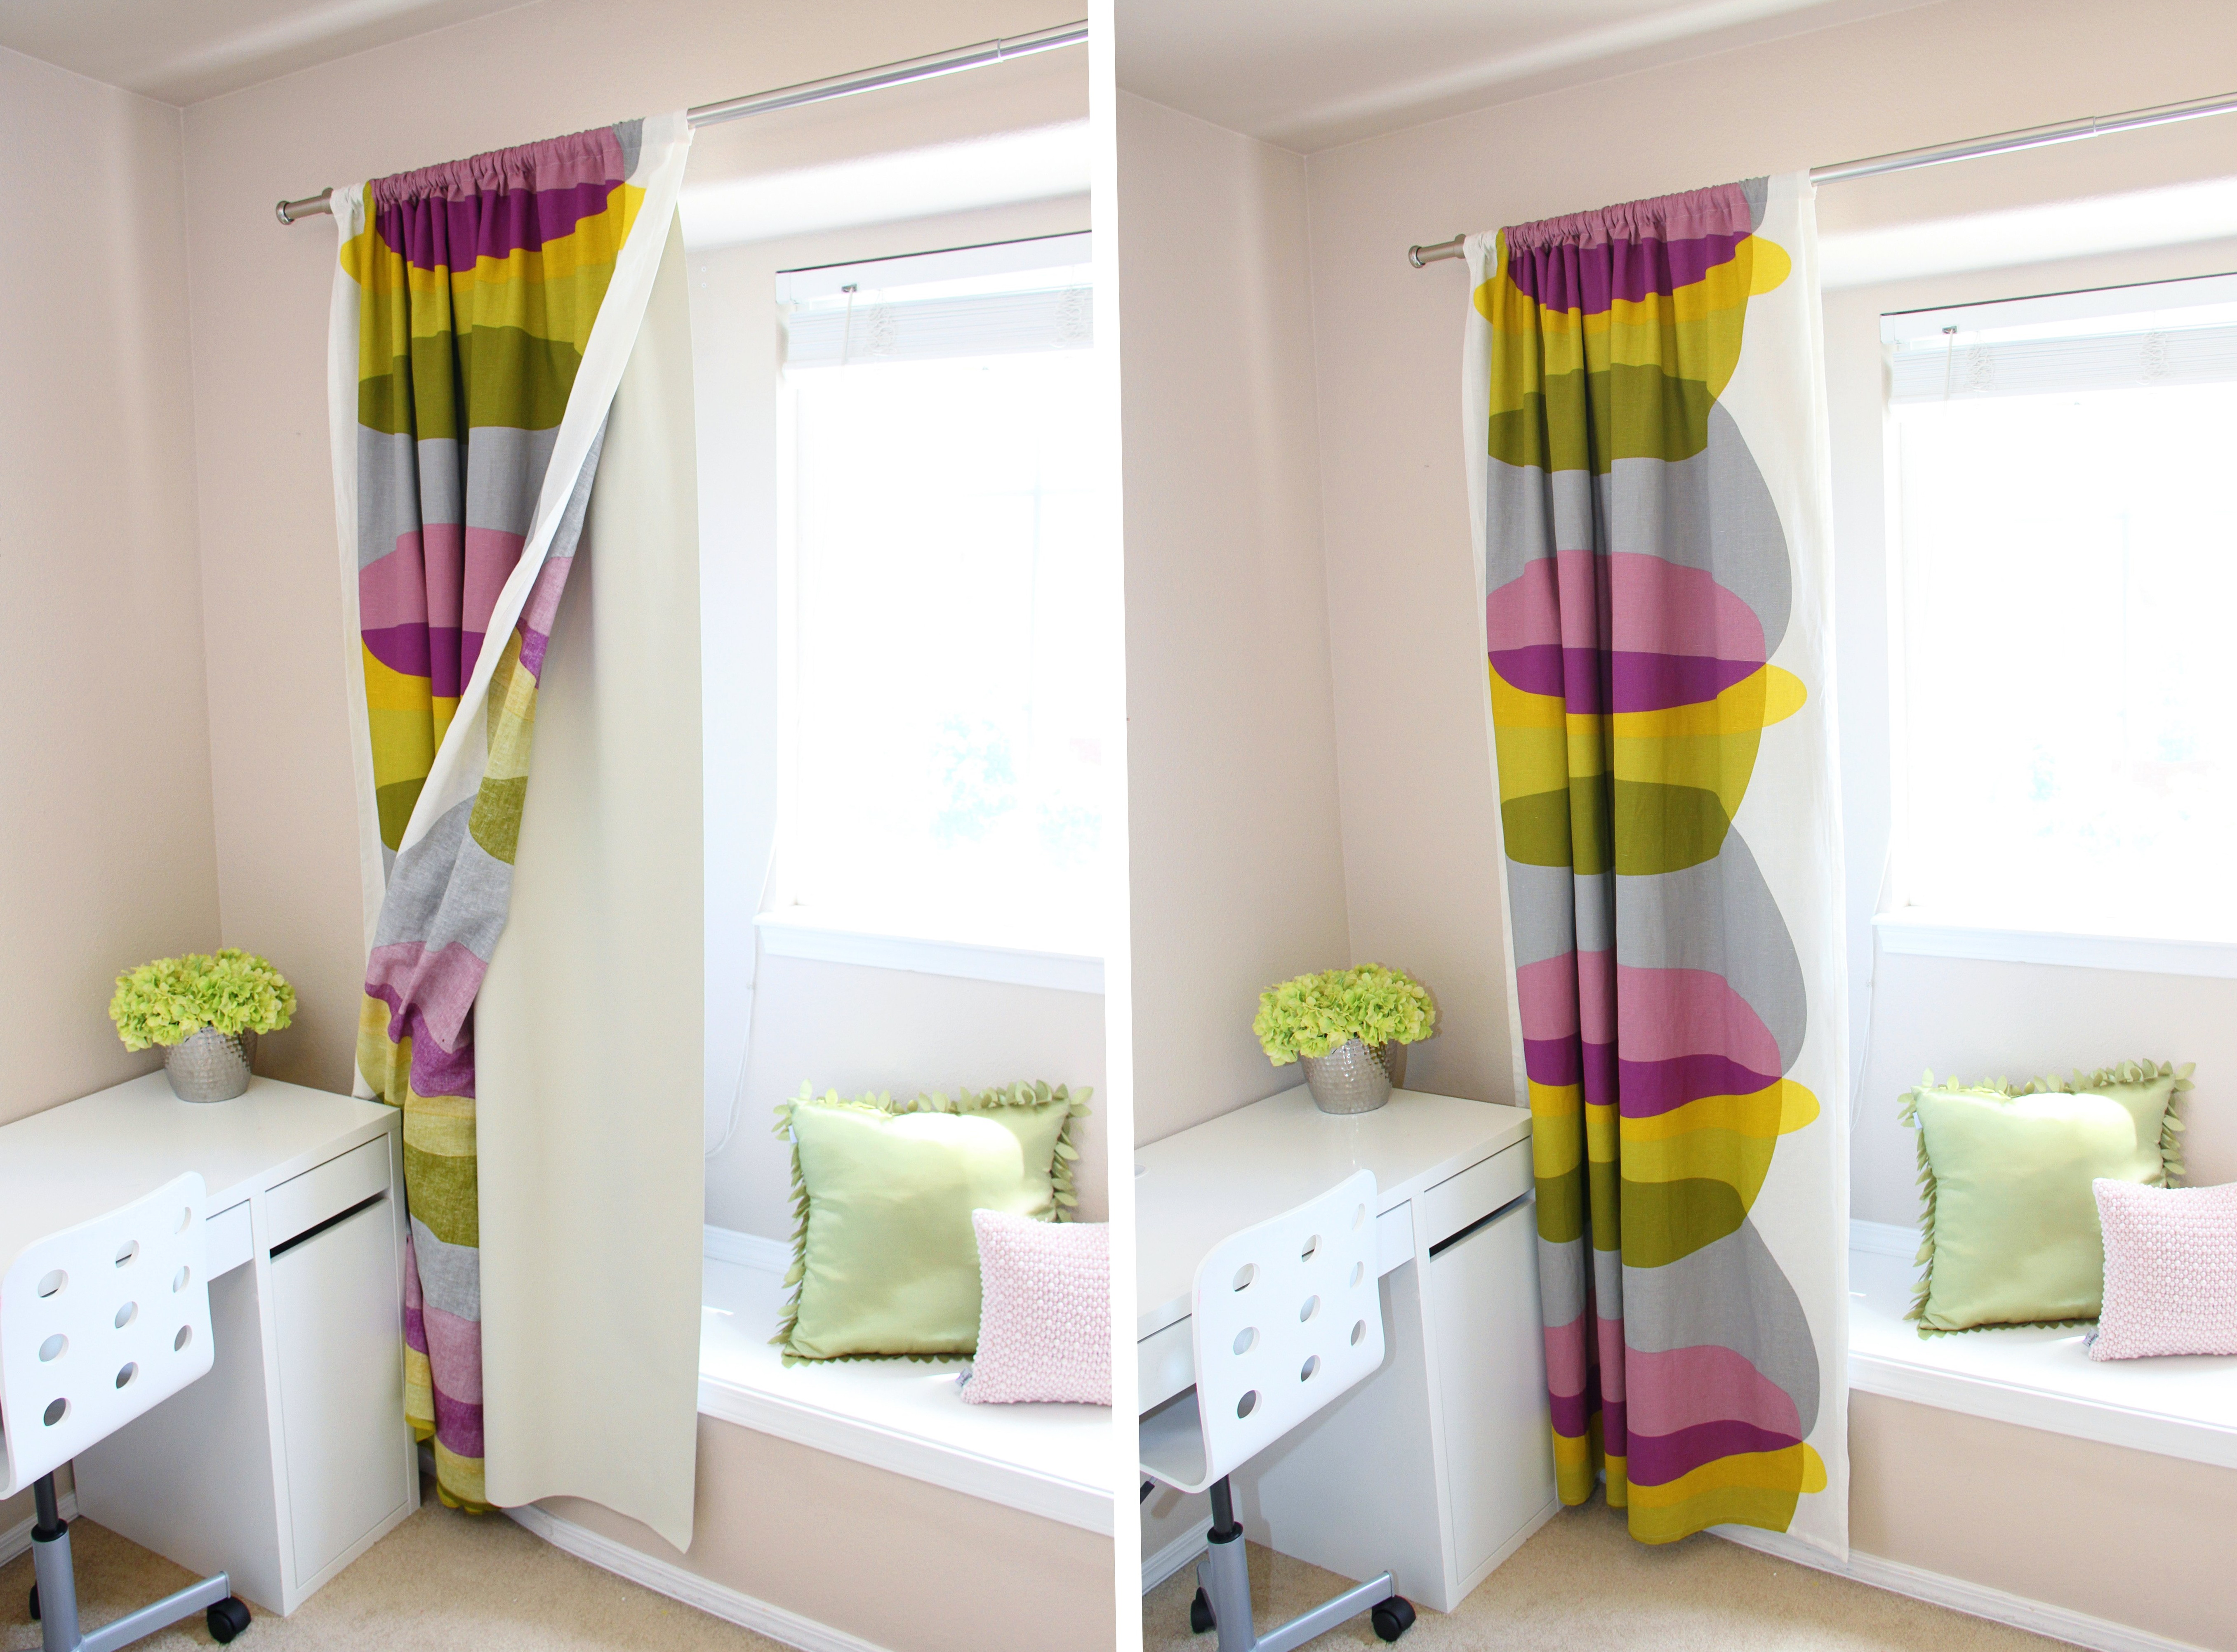 Ikea Blackout Curtains Marjun Home Design Ideas - Ikea Vorhang Marjun